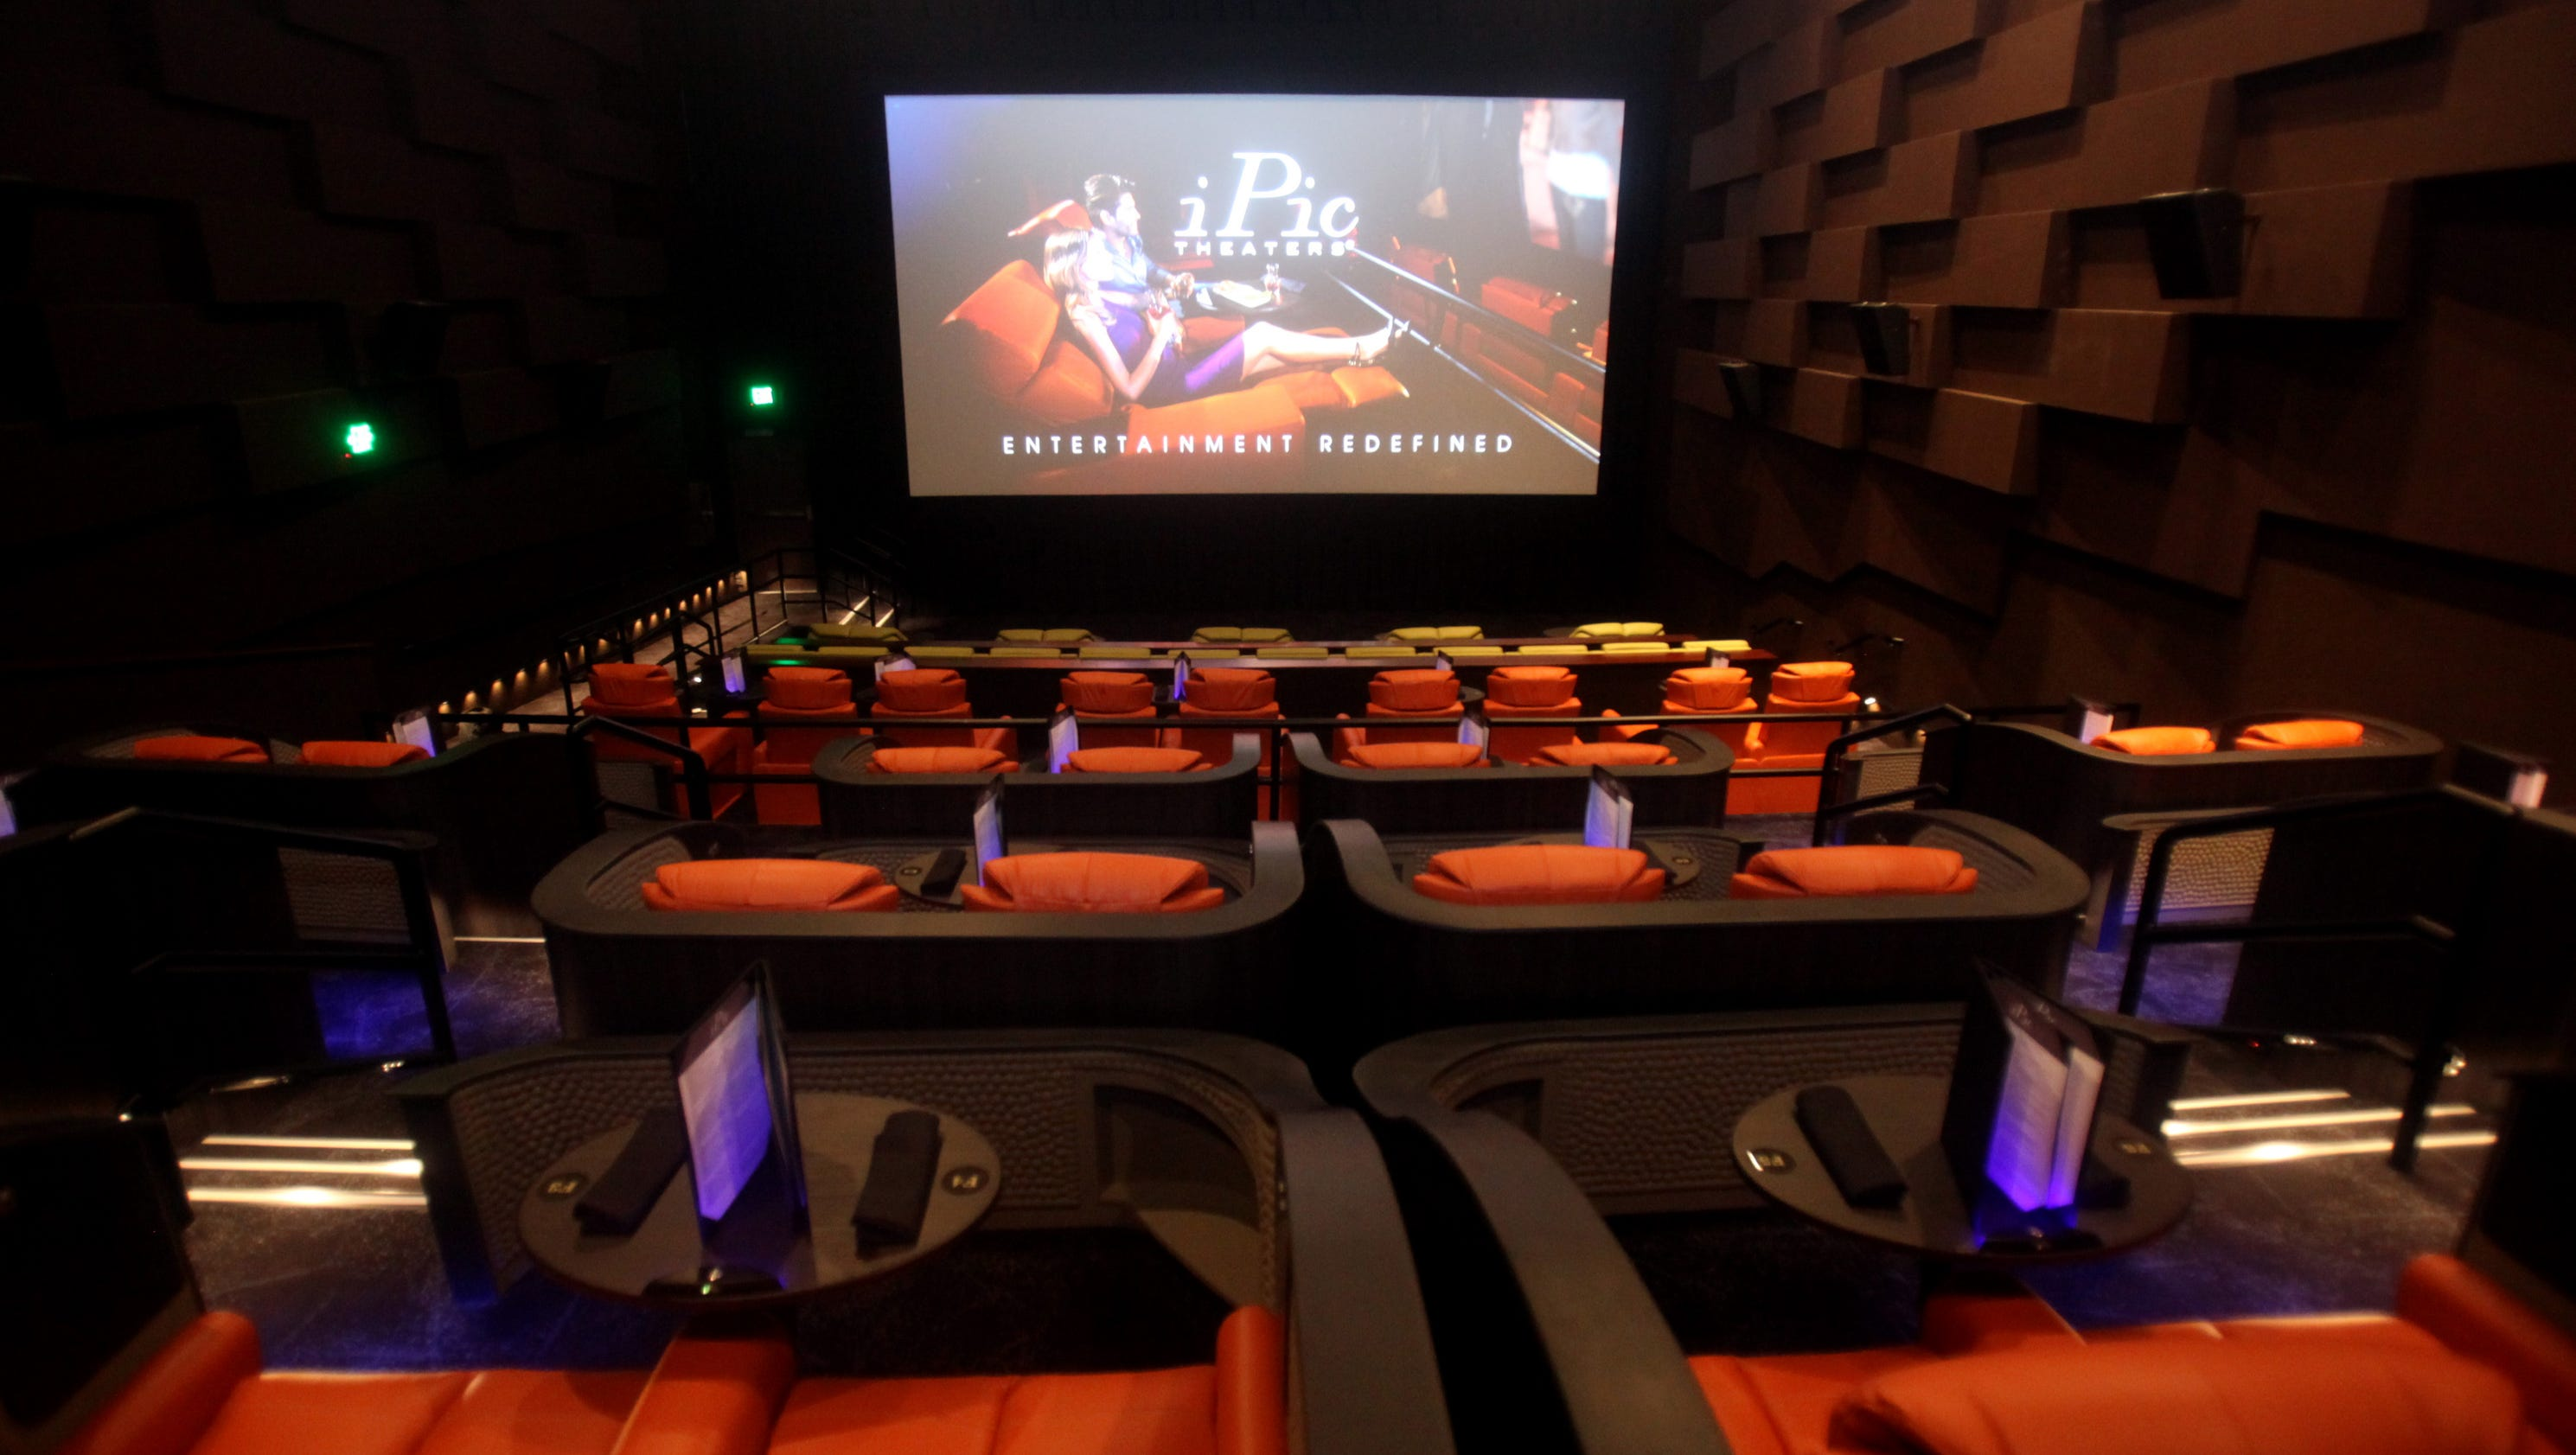 luxury movie theater to open in dobbs ferry